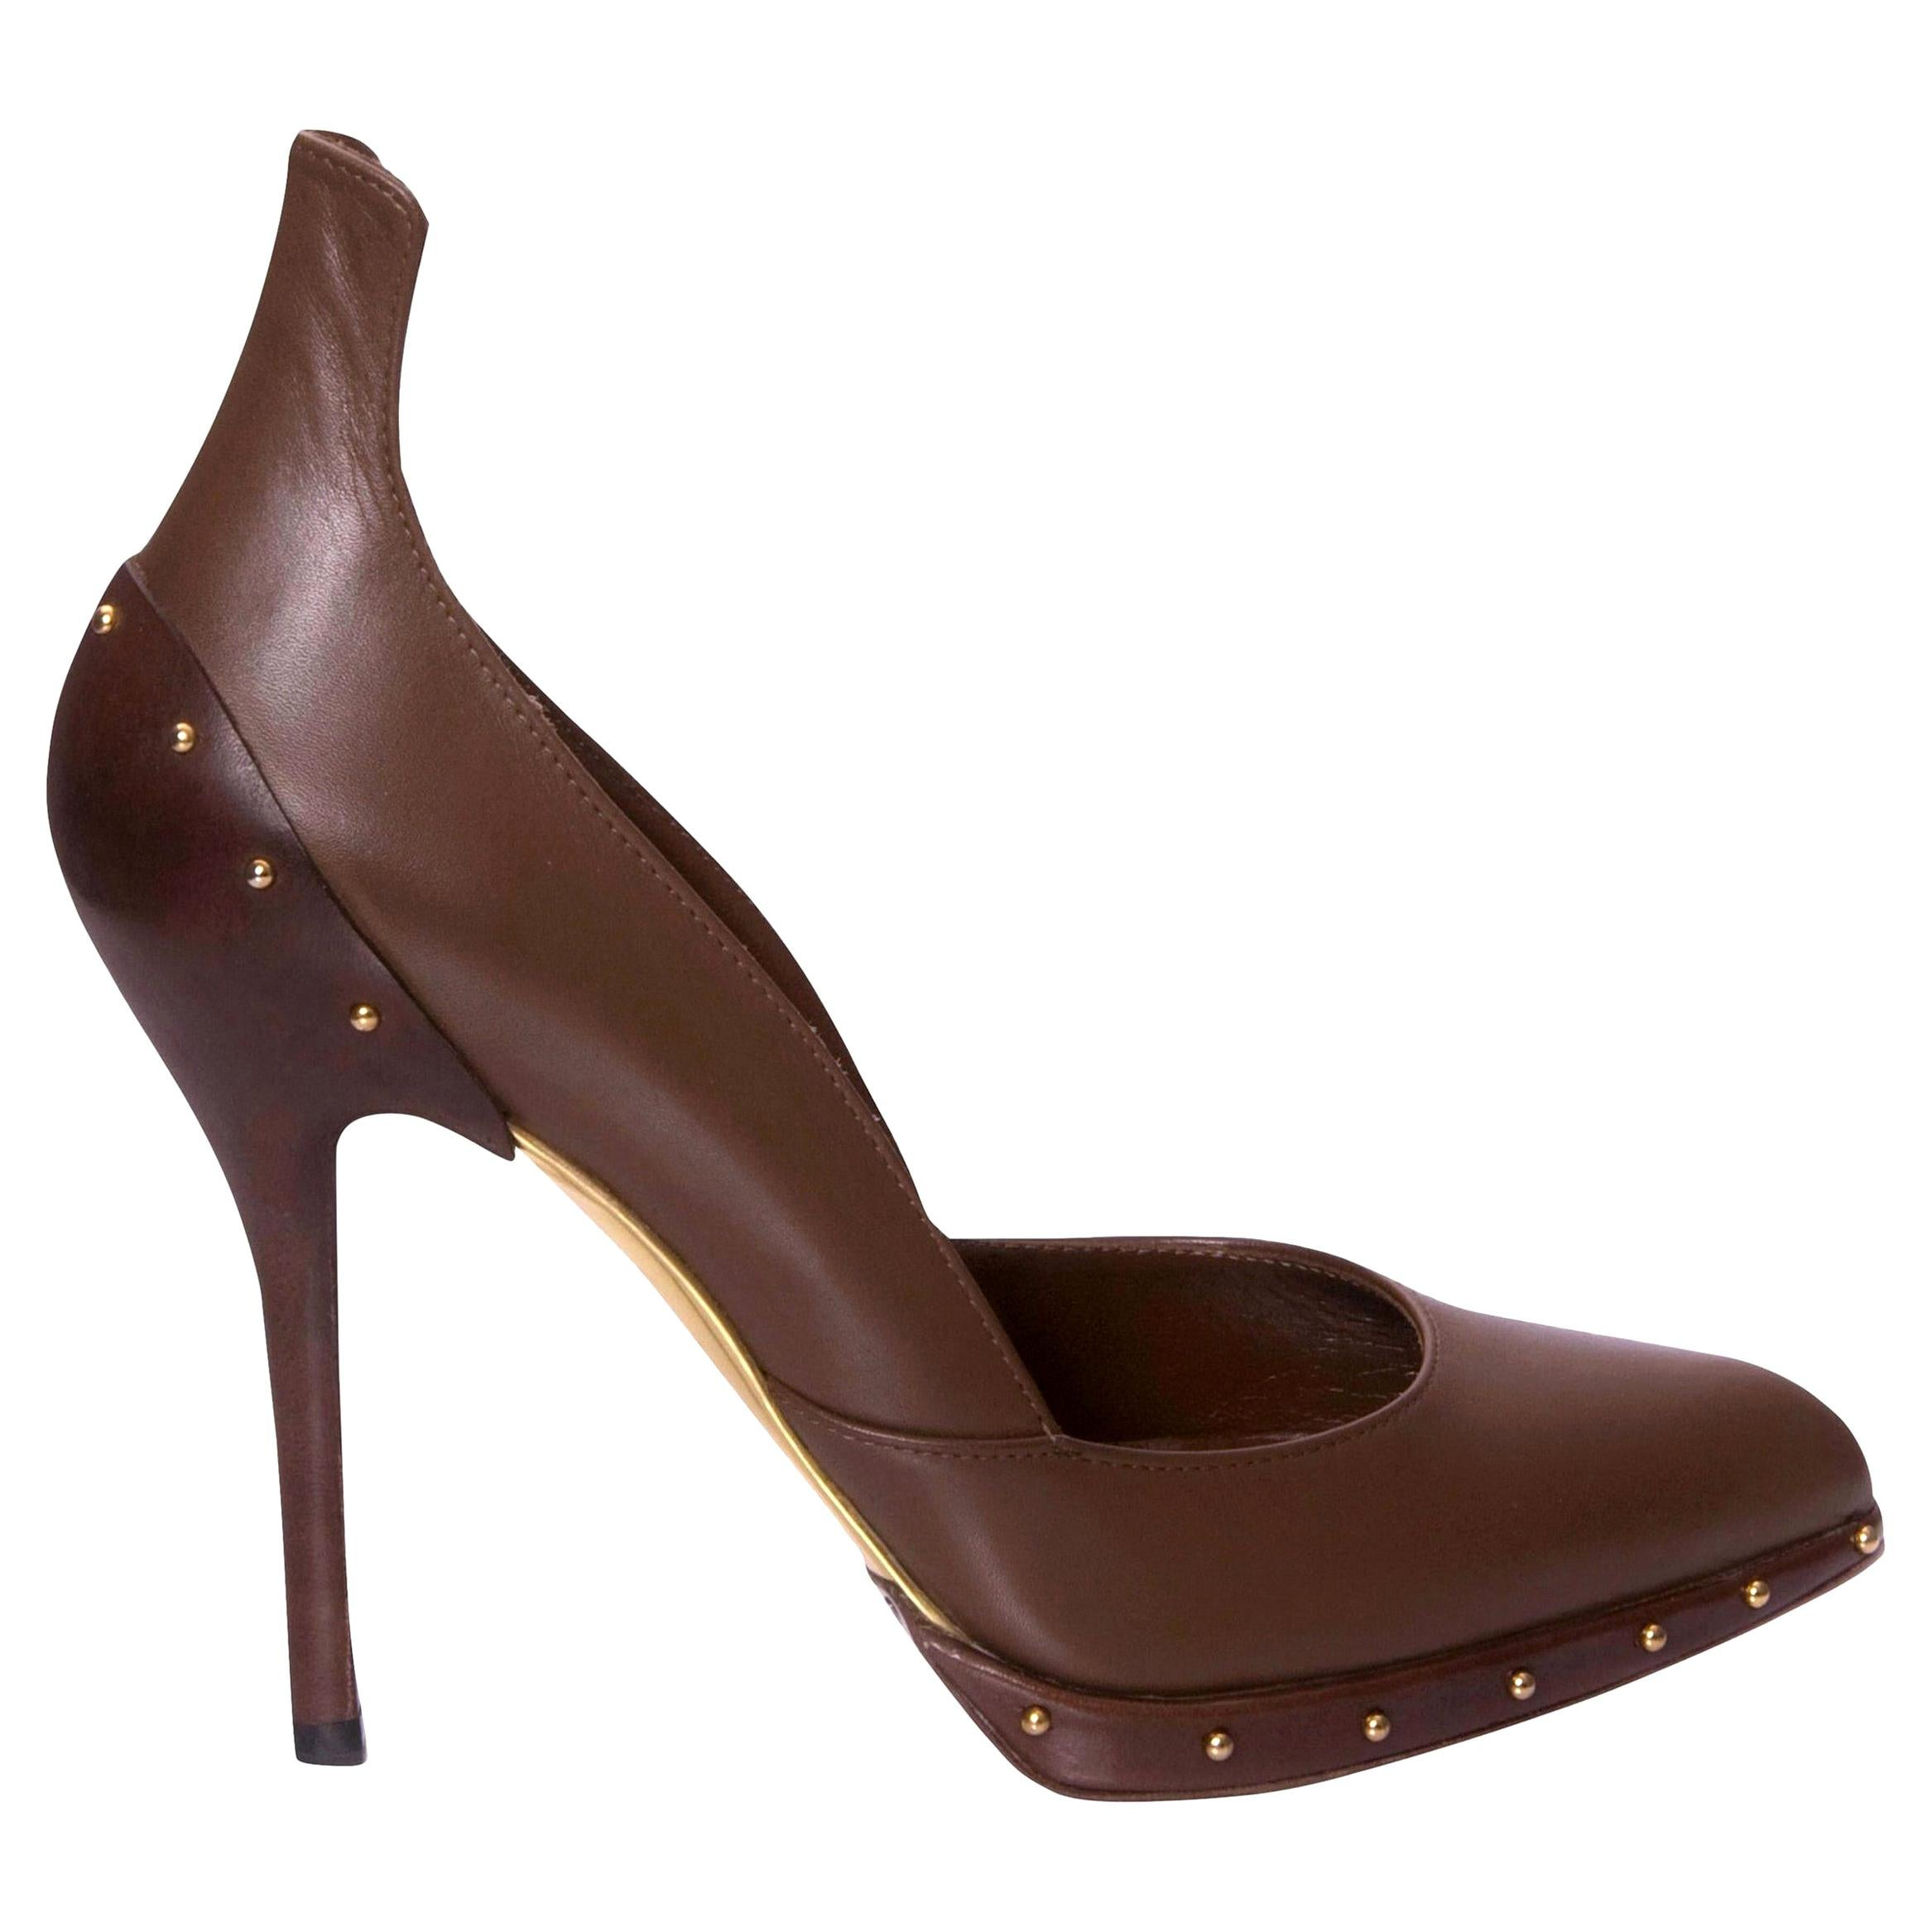 New Rare Tom Ford for Gucci Studded Ad Runway Heels Pumps Sz 9.5 Fall 2003